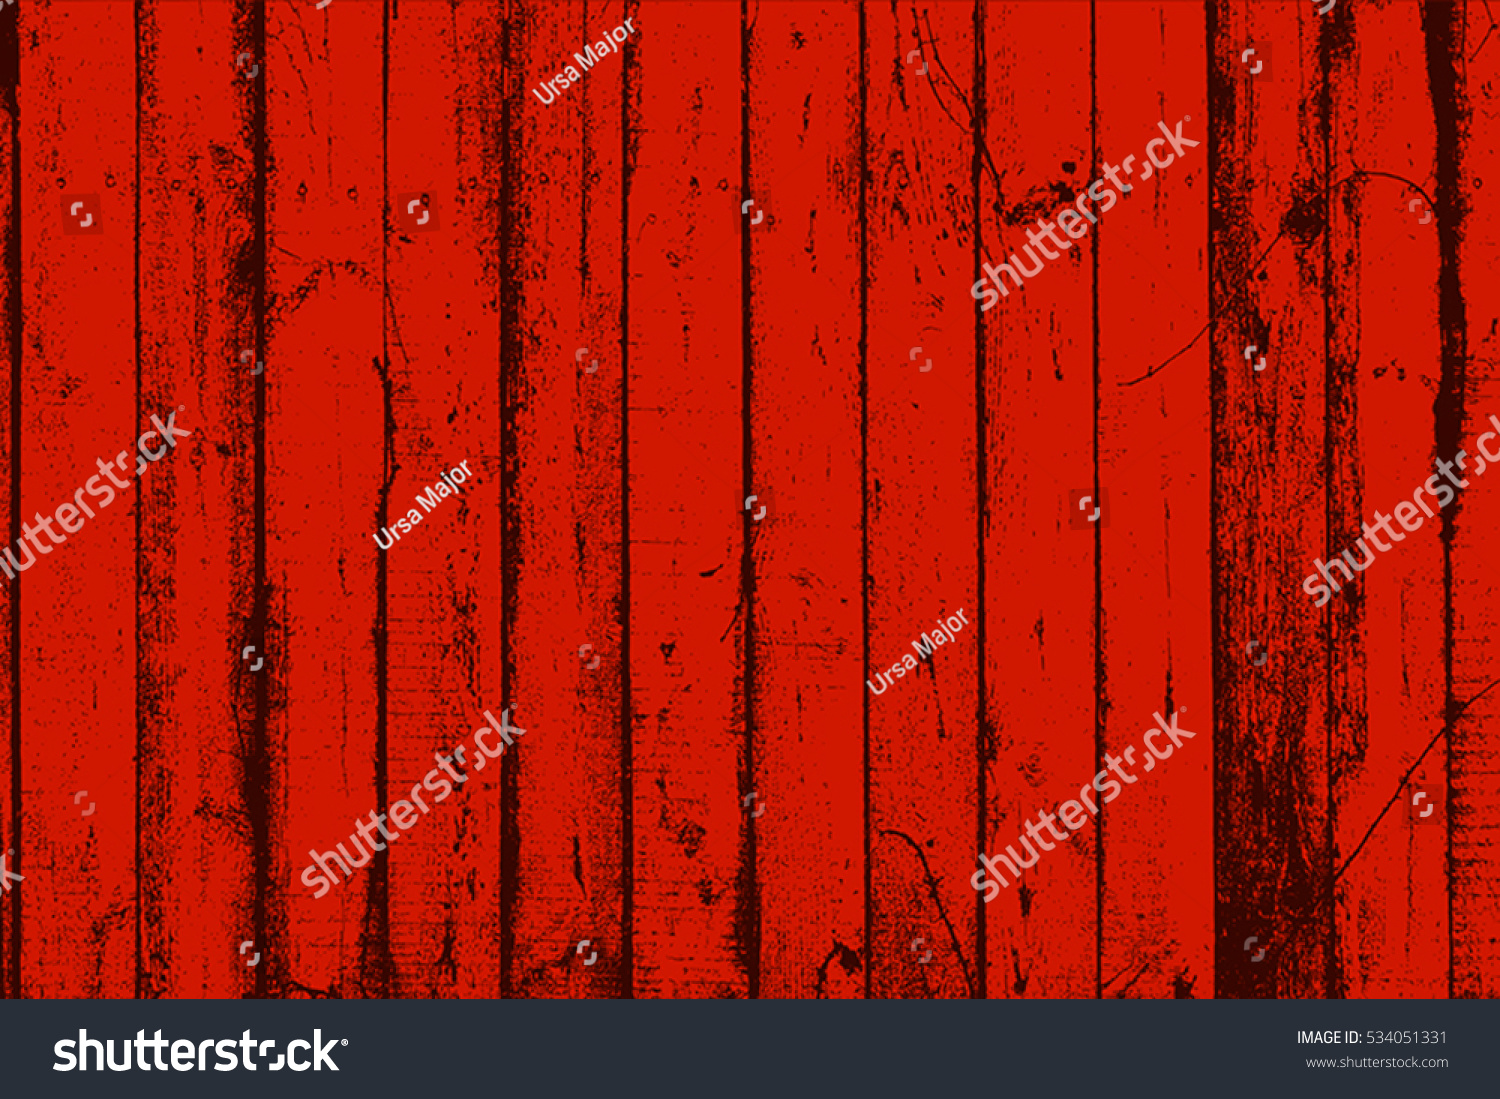 Distress Red Wooden Planks Overlay Texture Stock Vector